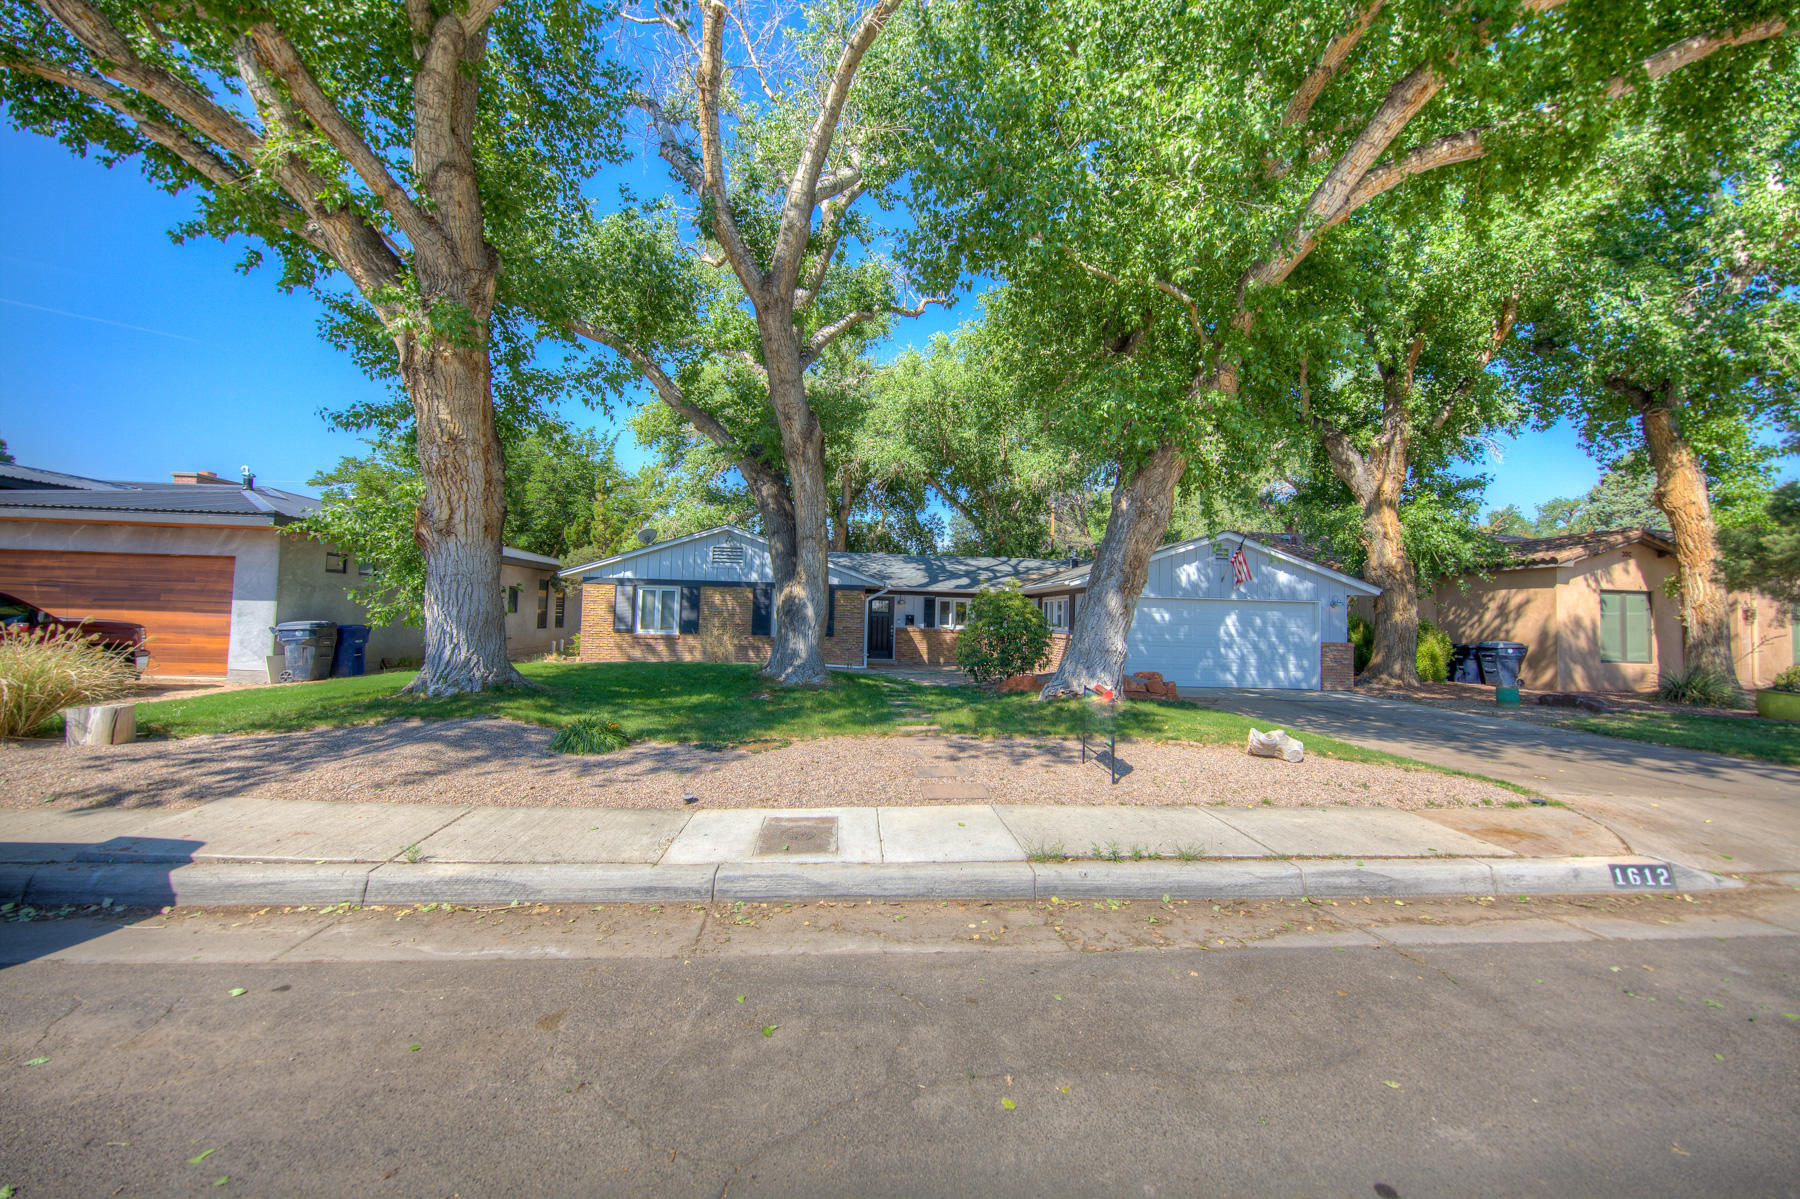 Beautiful Home in the Albuquerque Country Club neighborhood. This awesome home has two living areas, two master bedrooms! Spacious 4 bedrooms, quartz countertops, stainless steel appliances, and  refrigerated air. Come see your new home today!